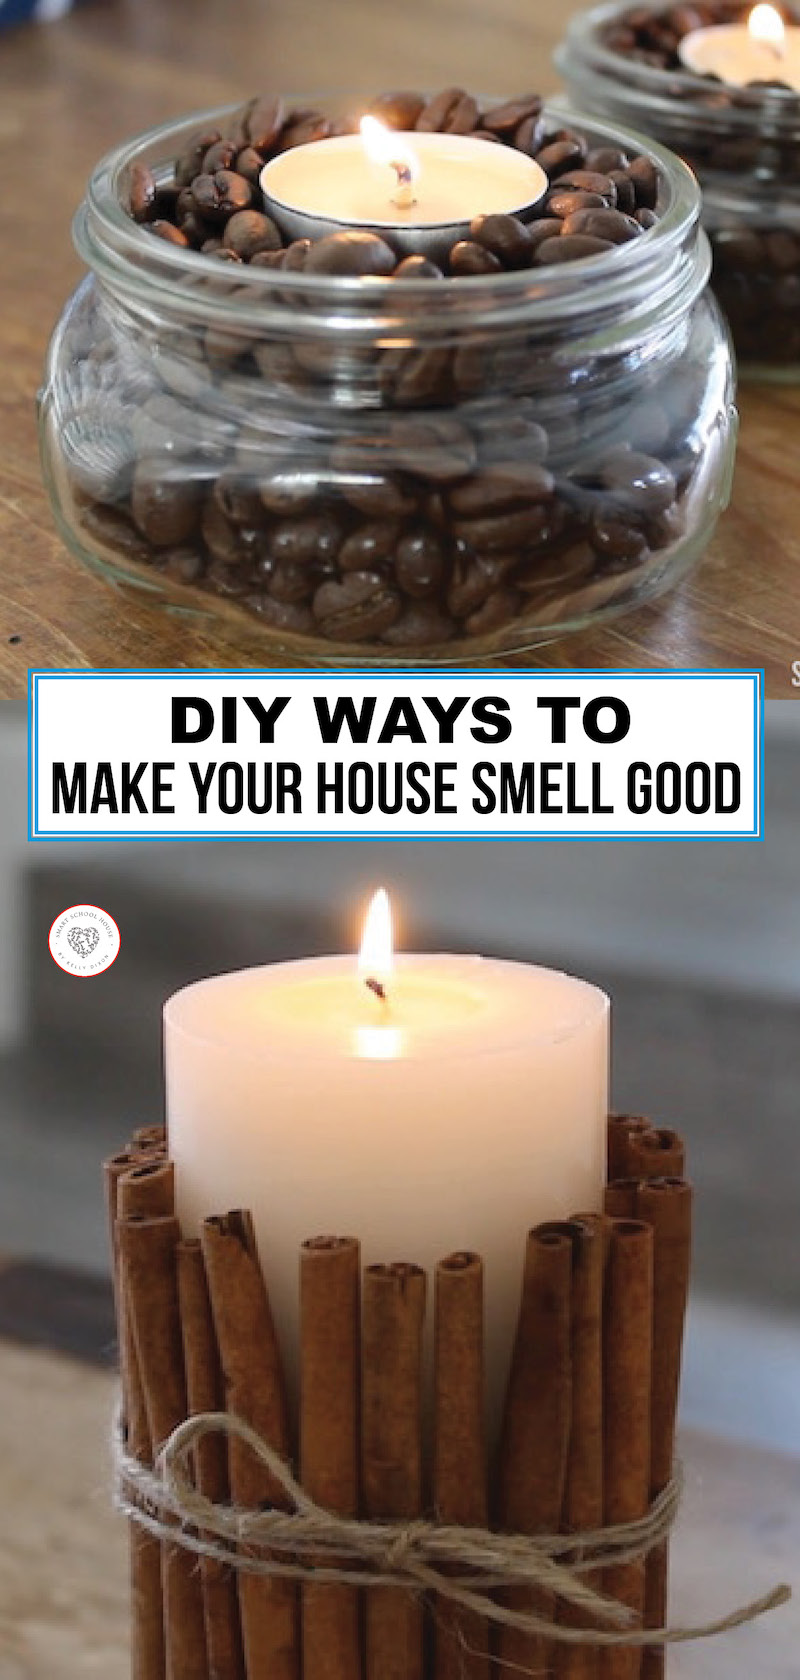 DIY Ways to Make Your House Smell Good